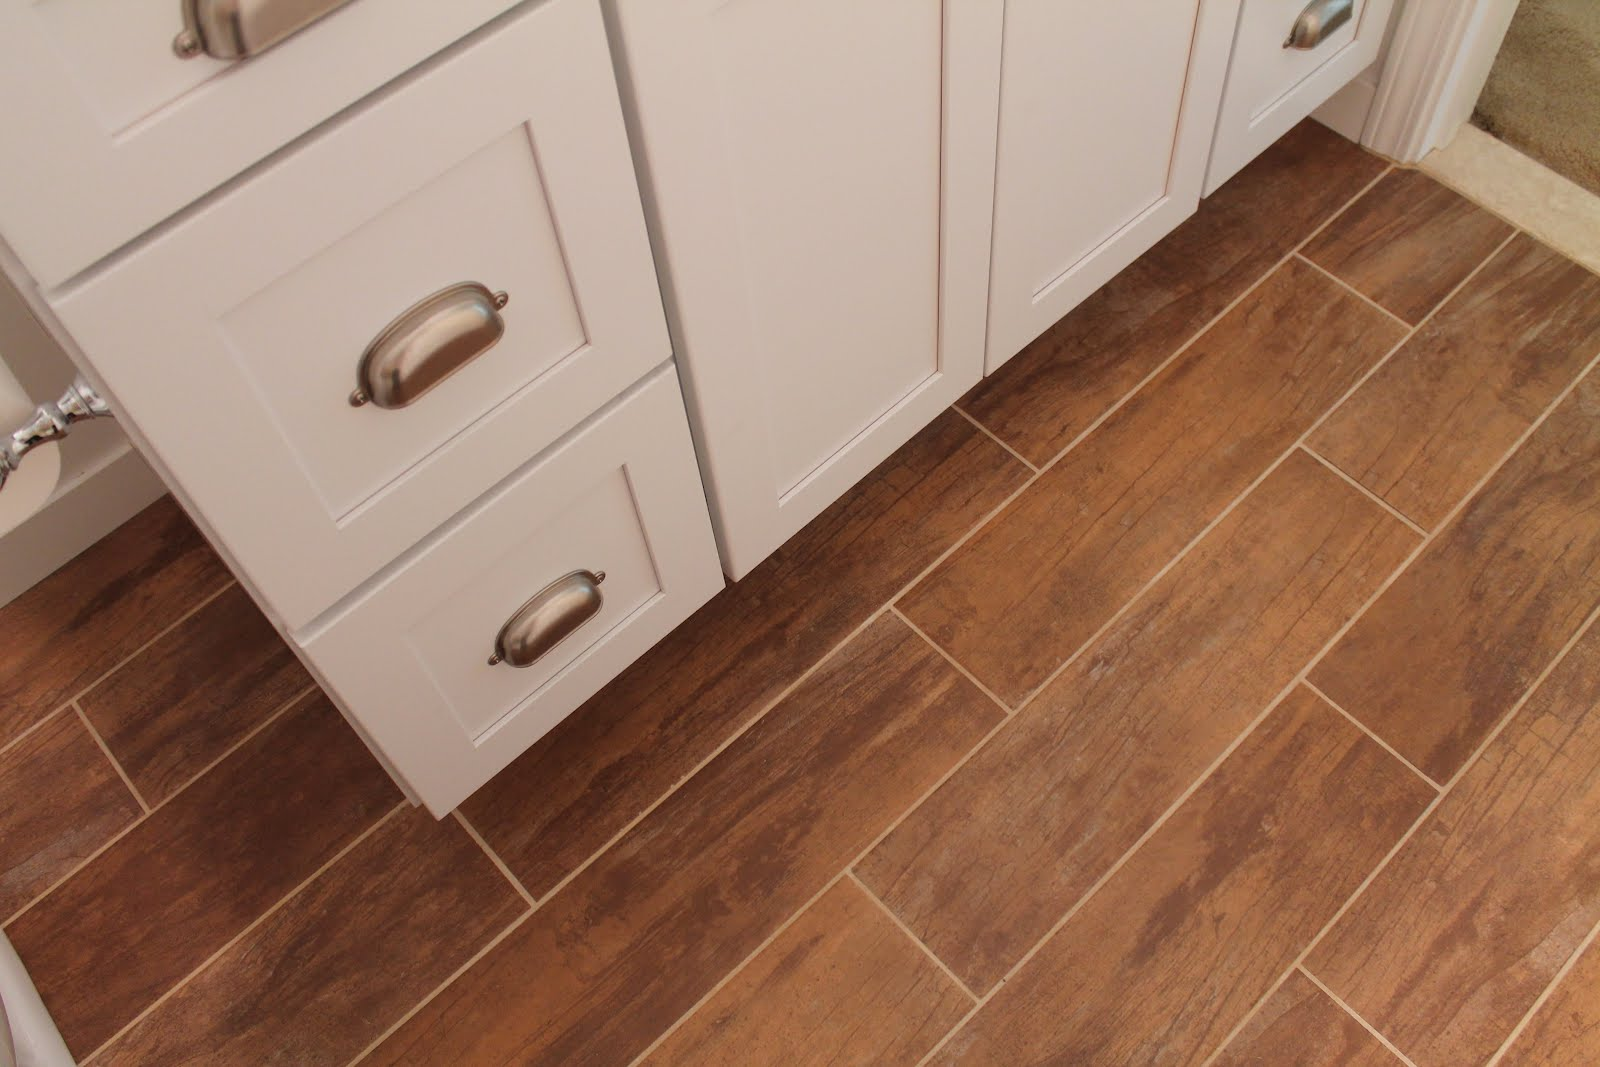 Bathroom wood grain tile flooring